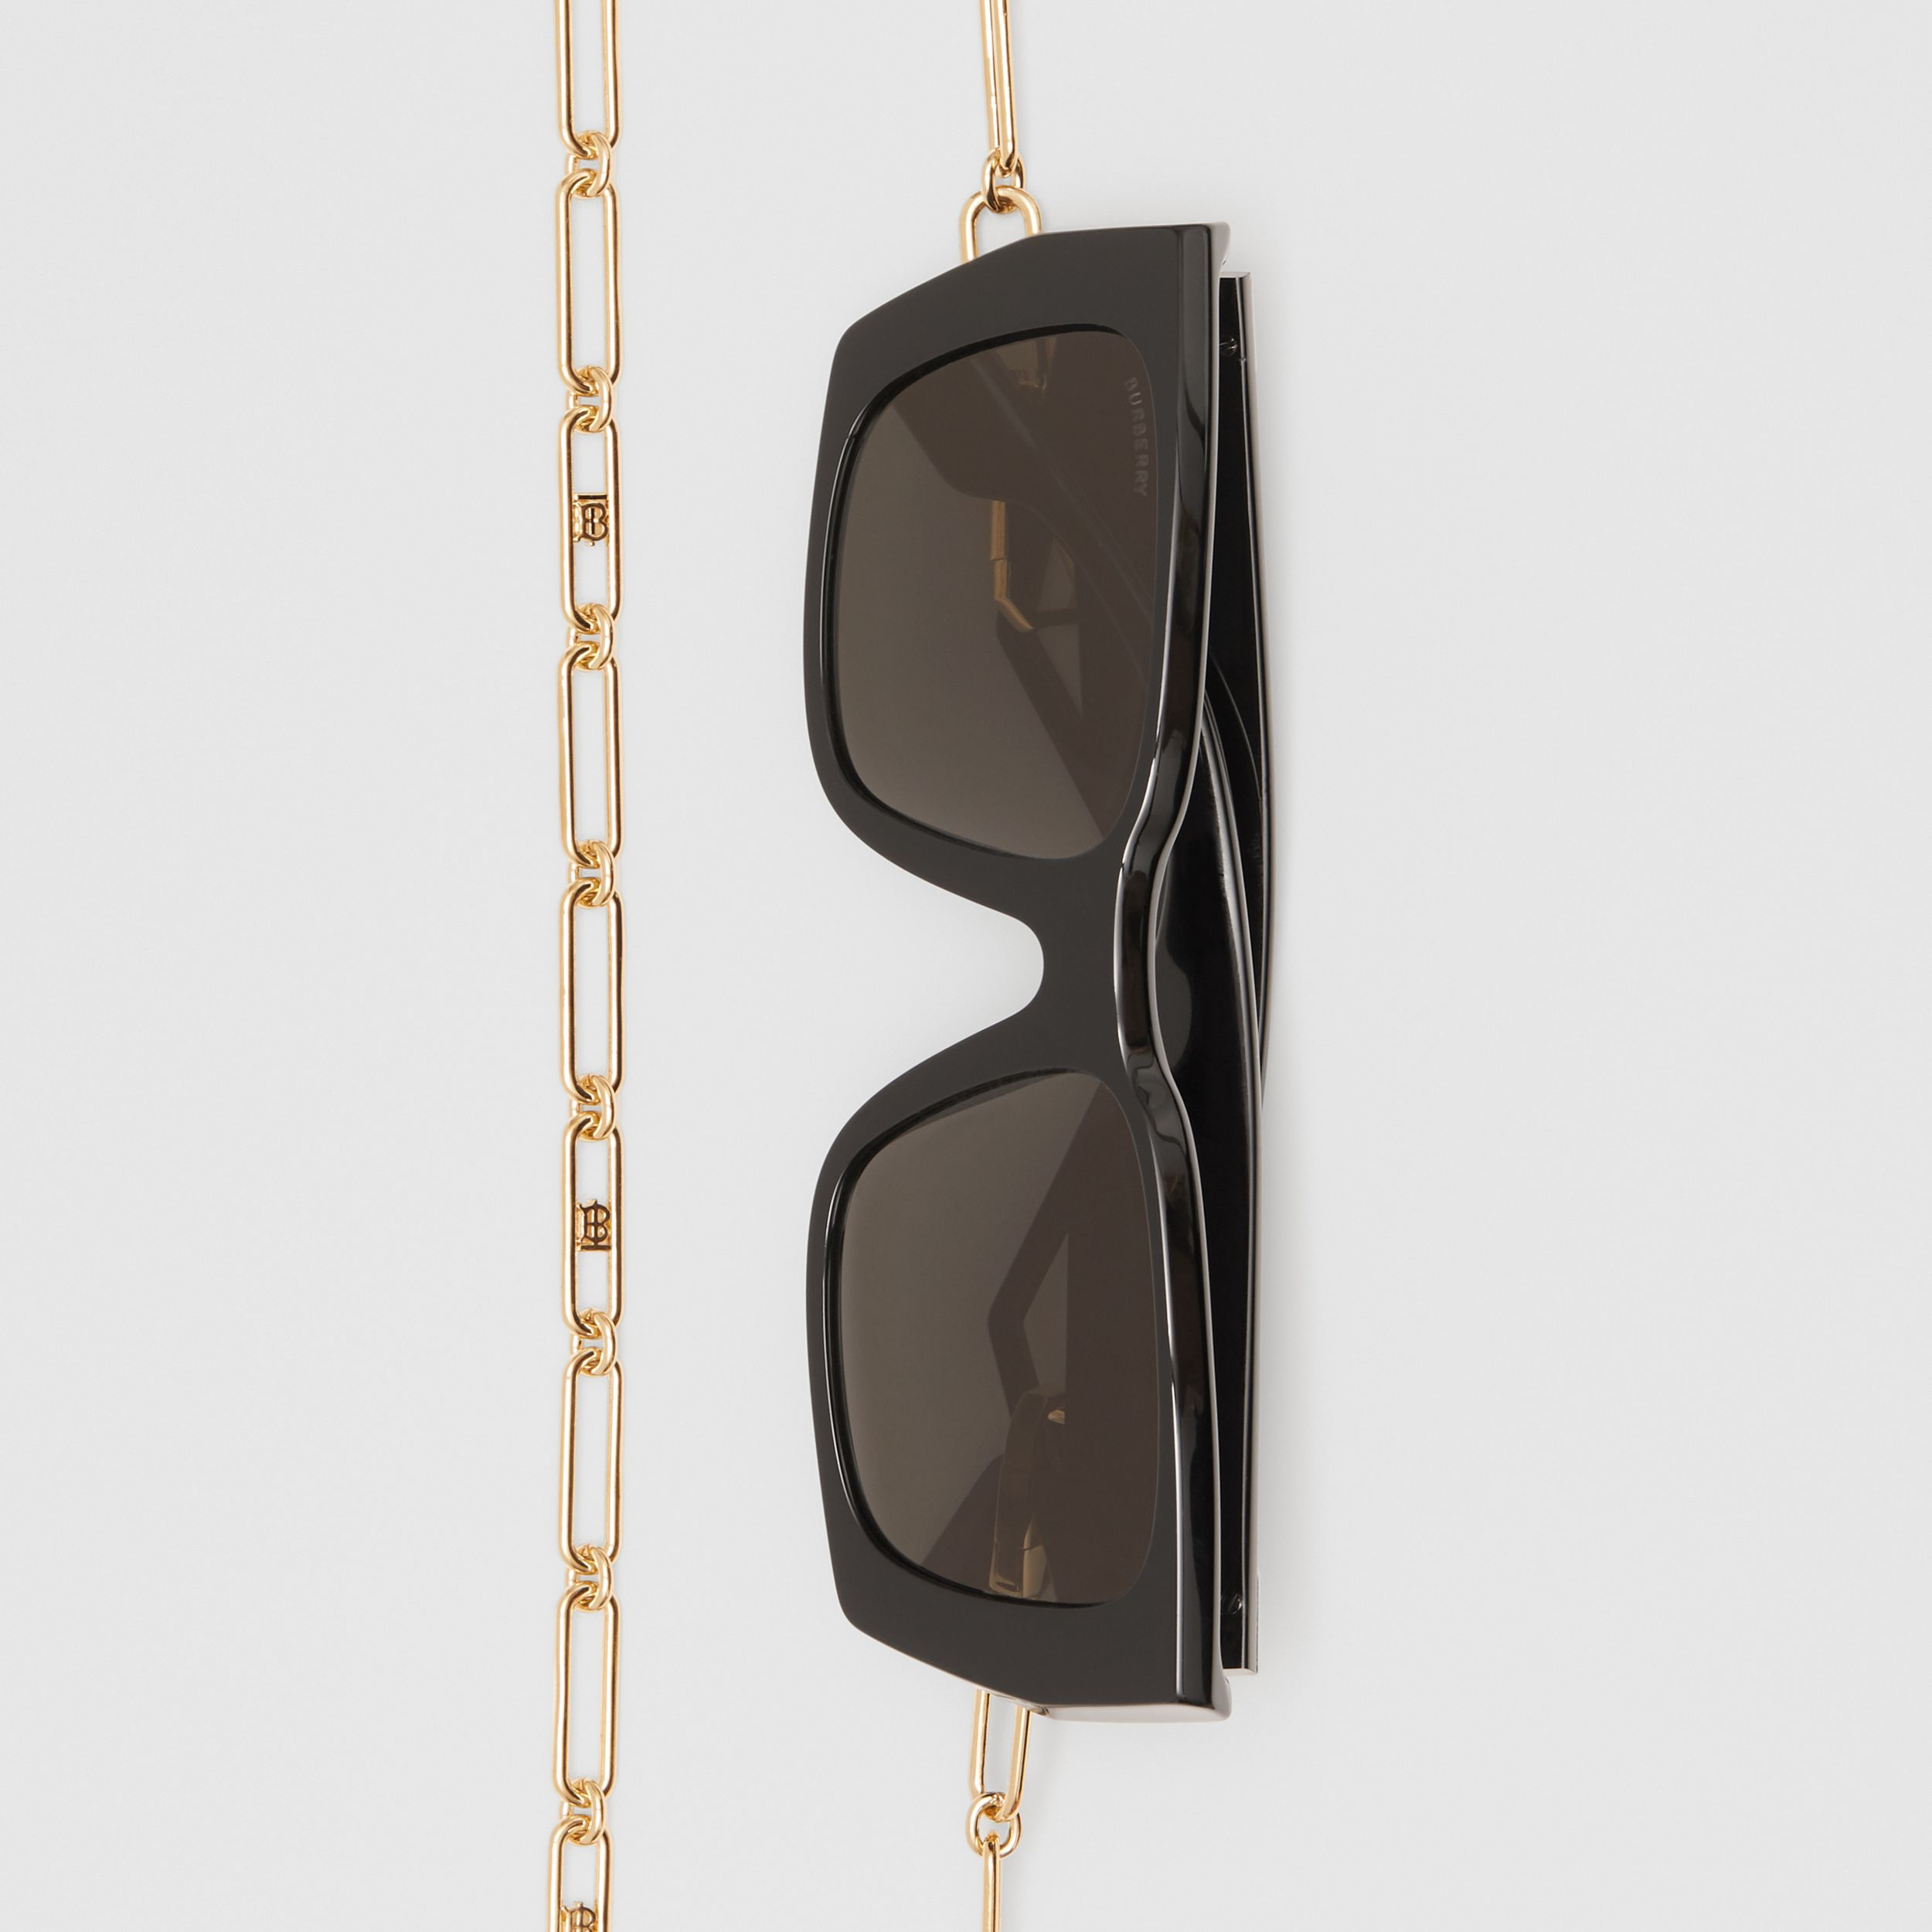 B Motif Rectangular Frame Sunglasses with Chain in Black - Women | Burberry United Kingdom - 4